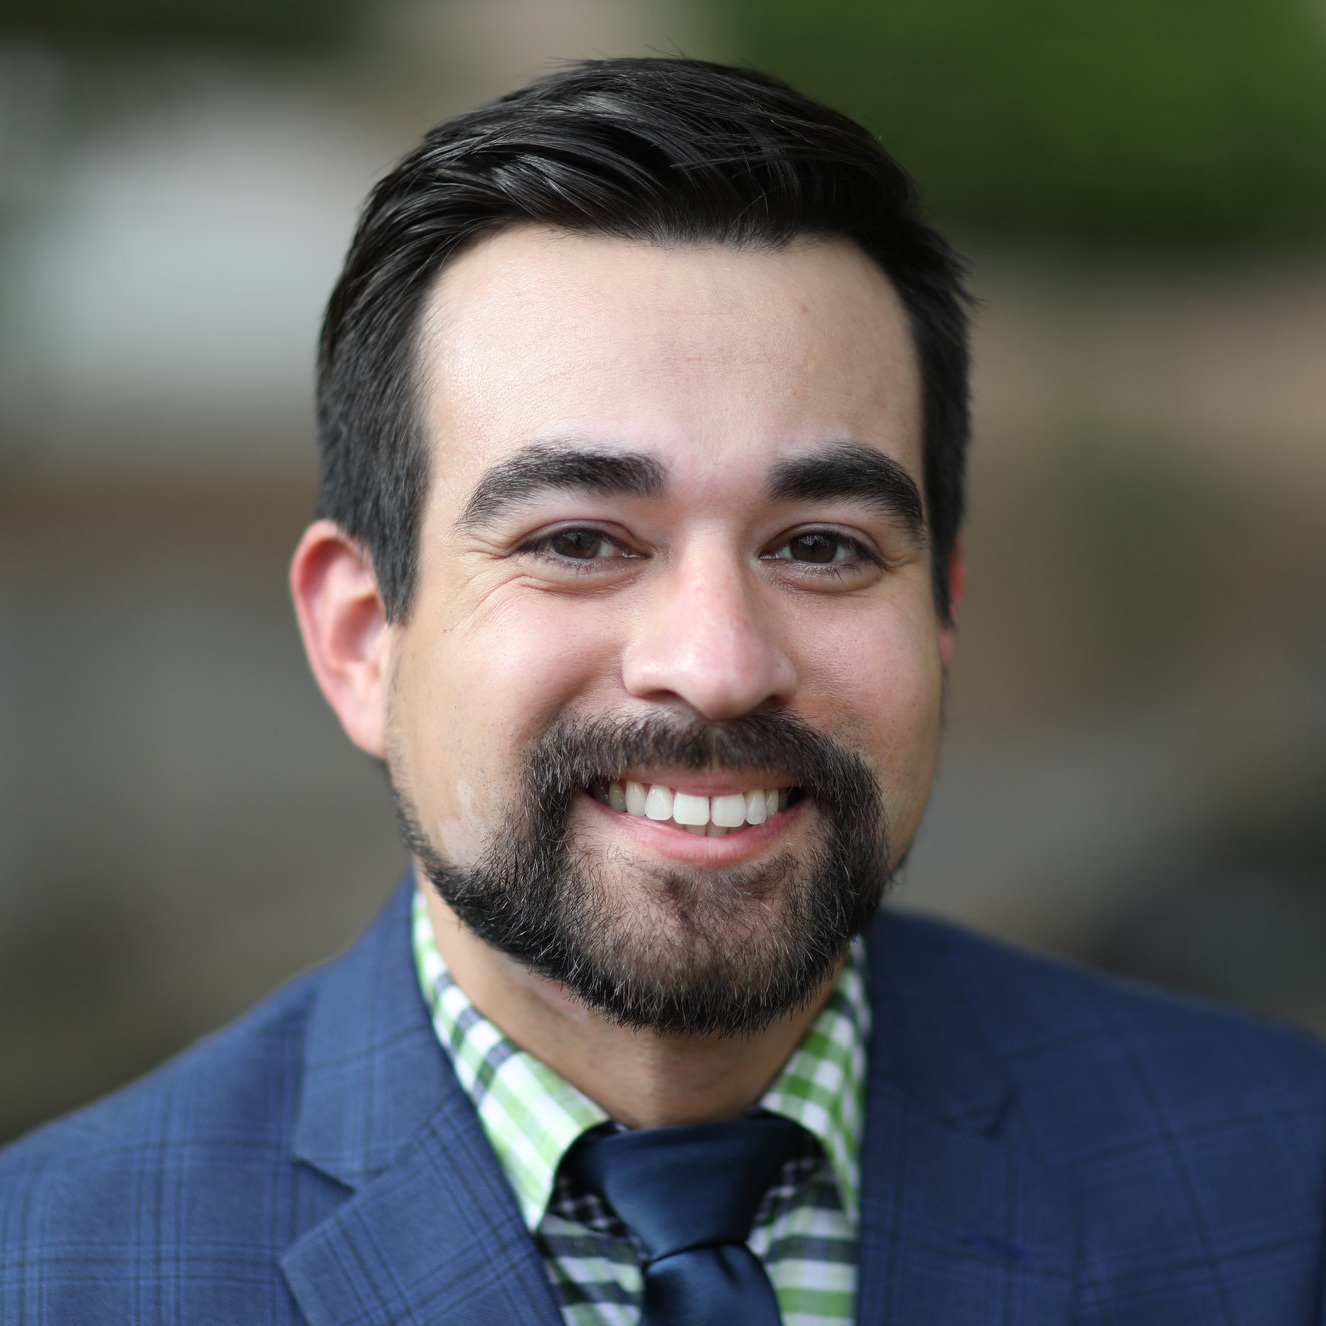 Robert Sepeda, Program and Impact Manager, Greater Houston Community Foundation